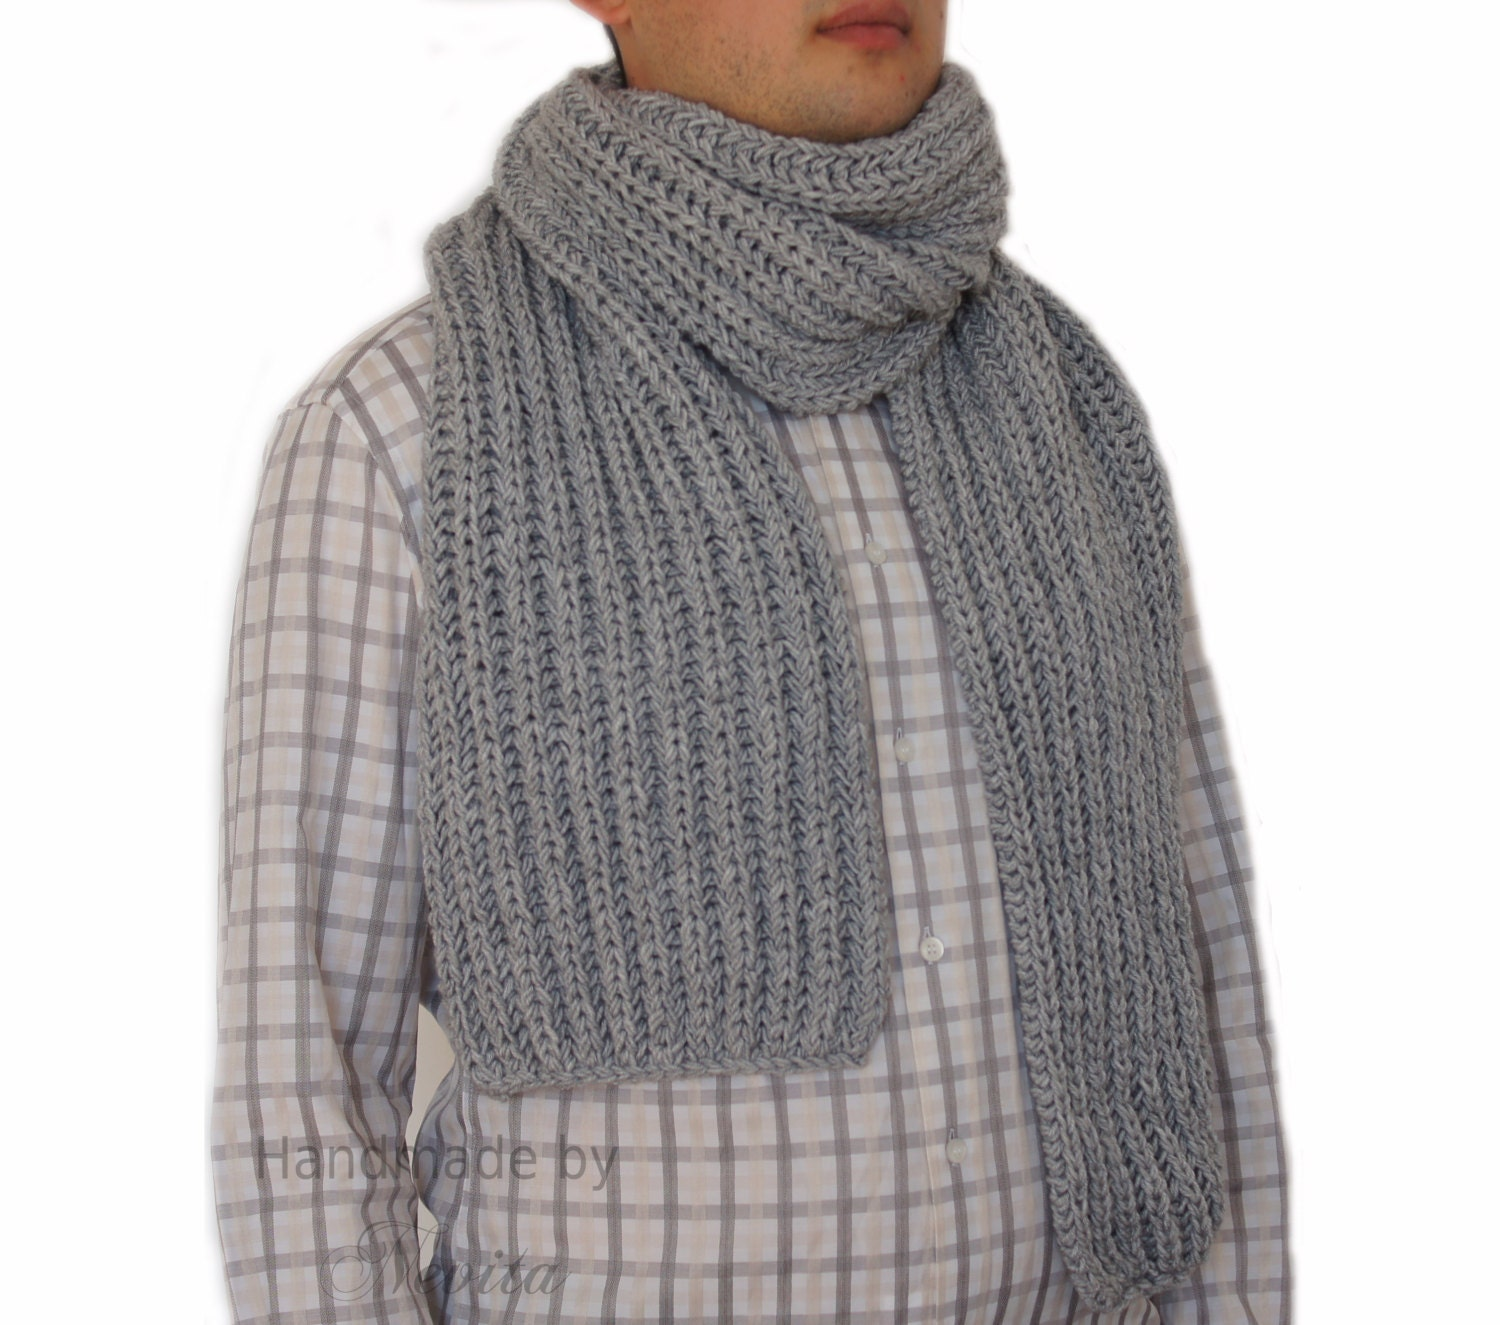 Knitting Scarf For Man : Gray wool scarf men grey hand knitted mens